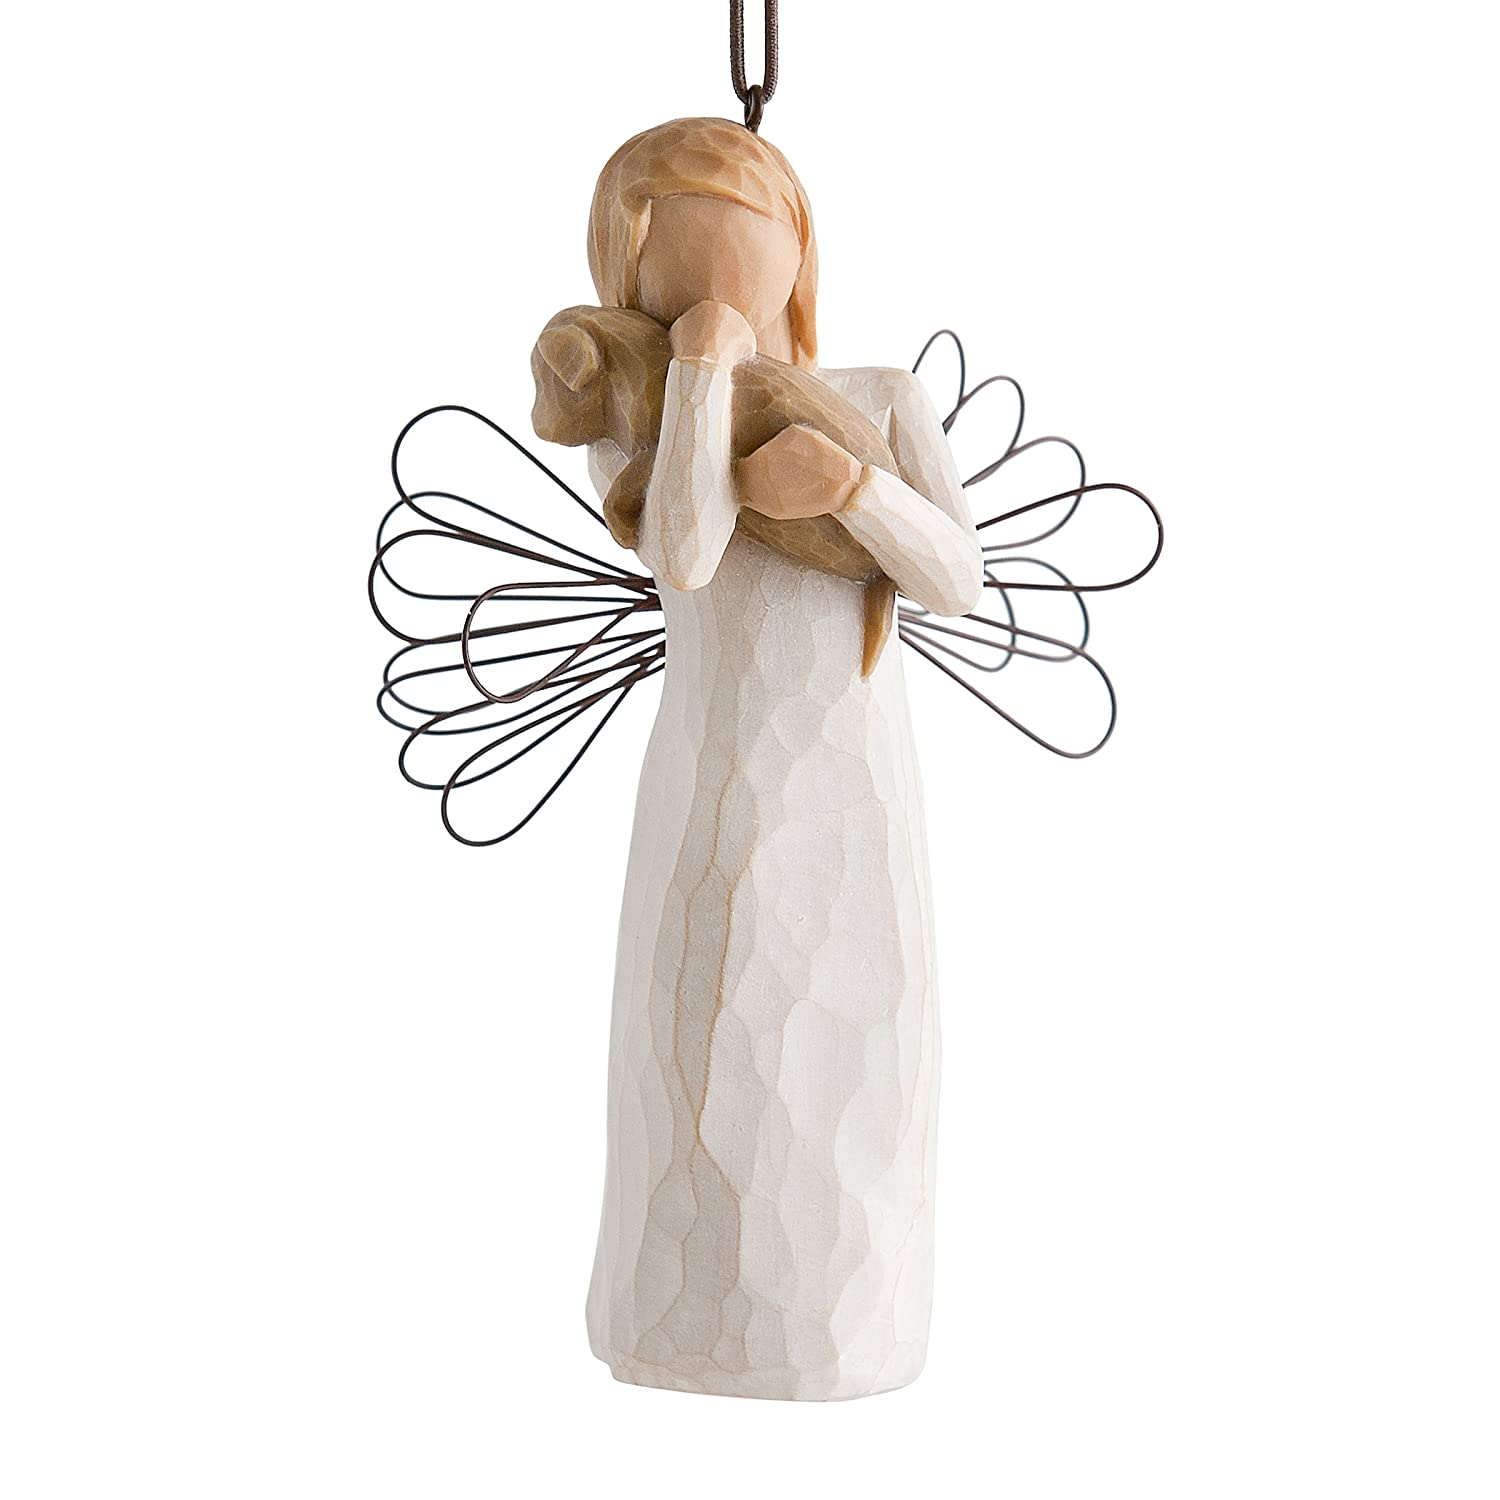 Willow Tree hand-painted sculpted Ornament, Angel of Friendship Susan Lordi DEMDACO - Home 26043